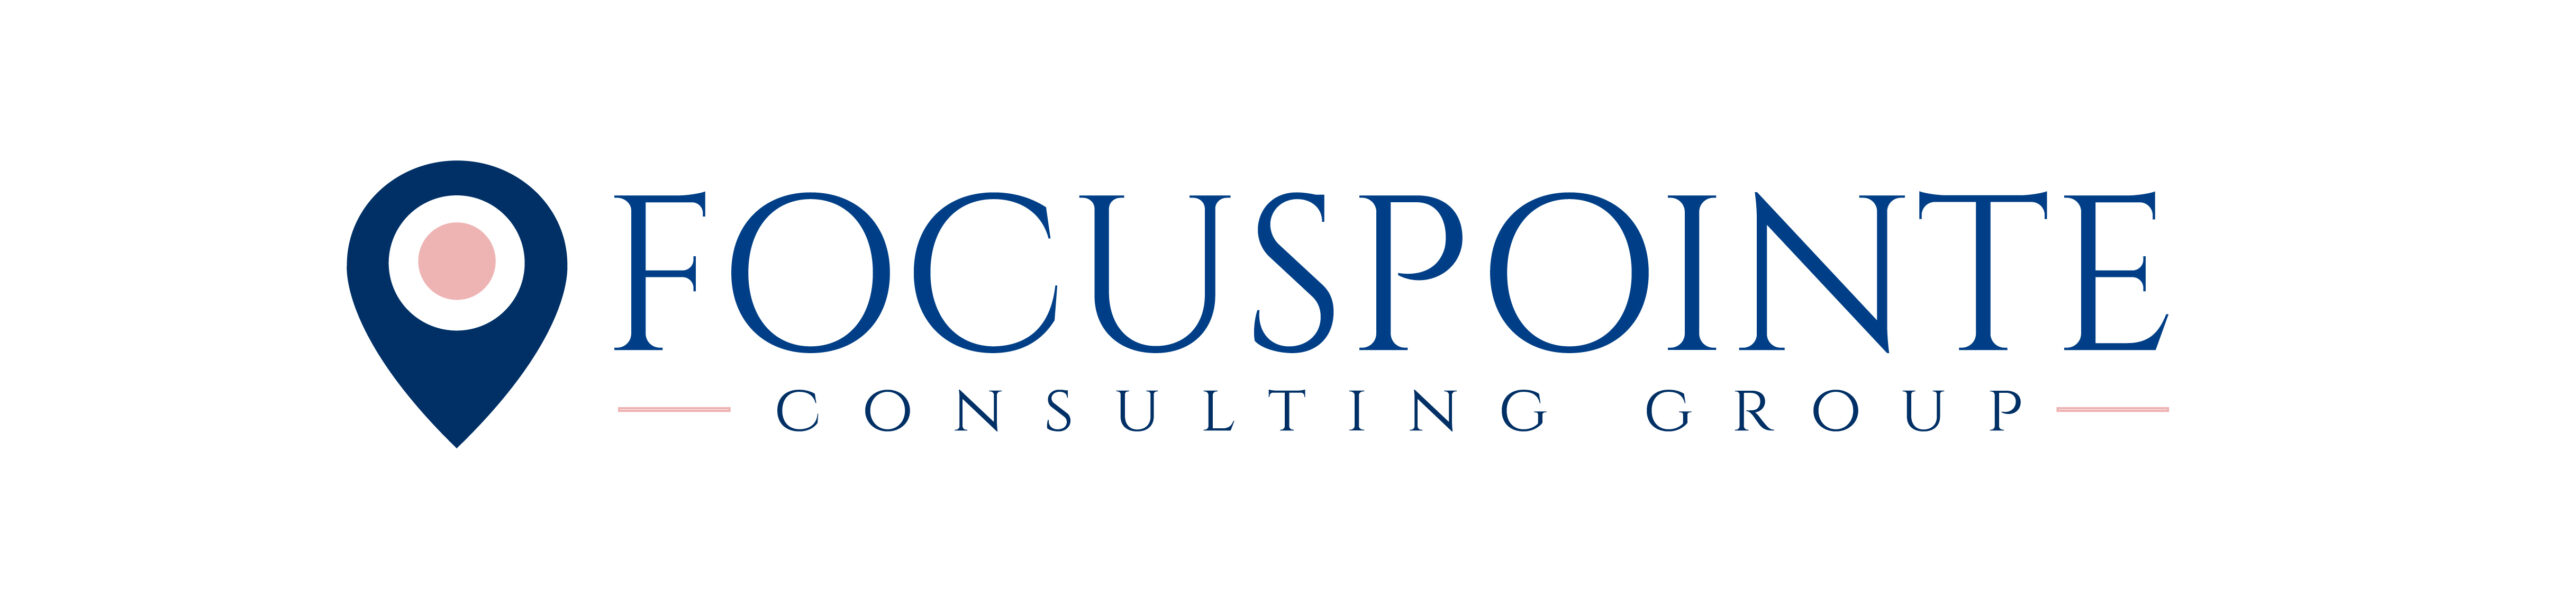 Focuspointe Consulting Group Logo Alt 003F87 EEB4B4 scaled